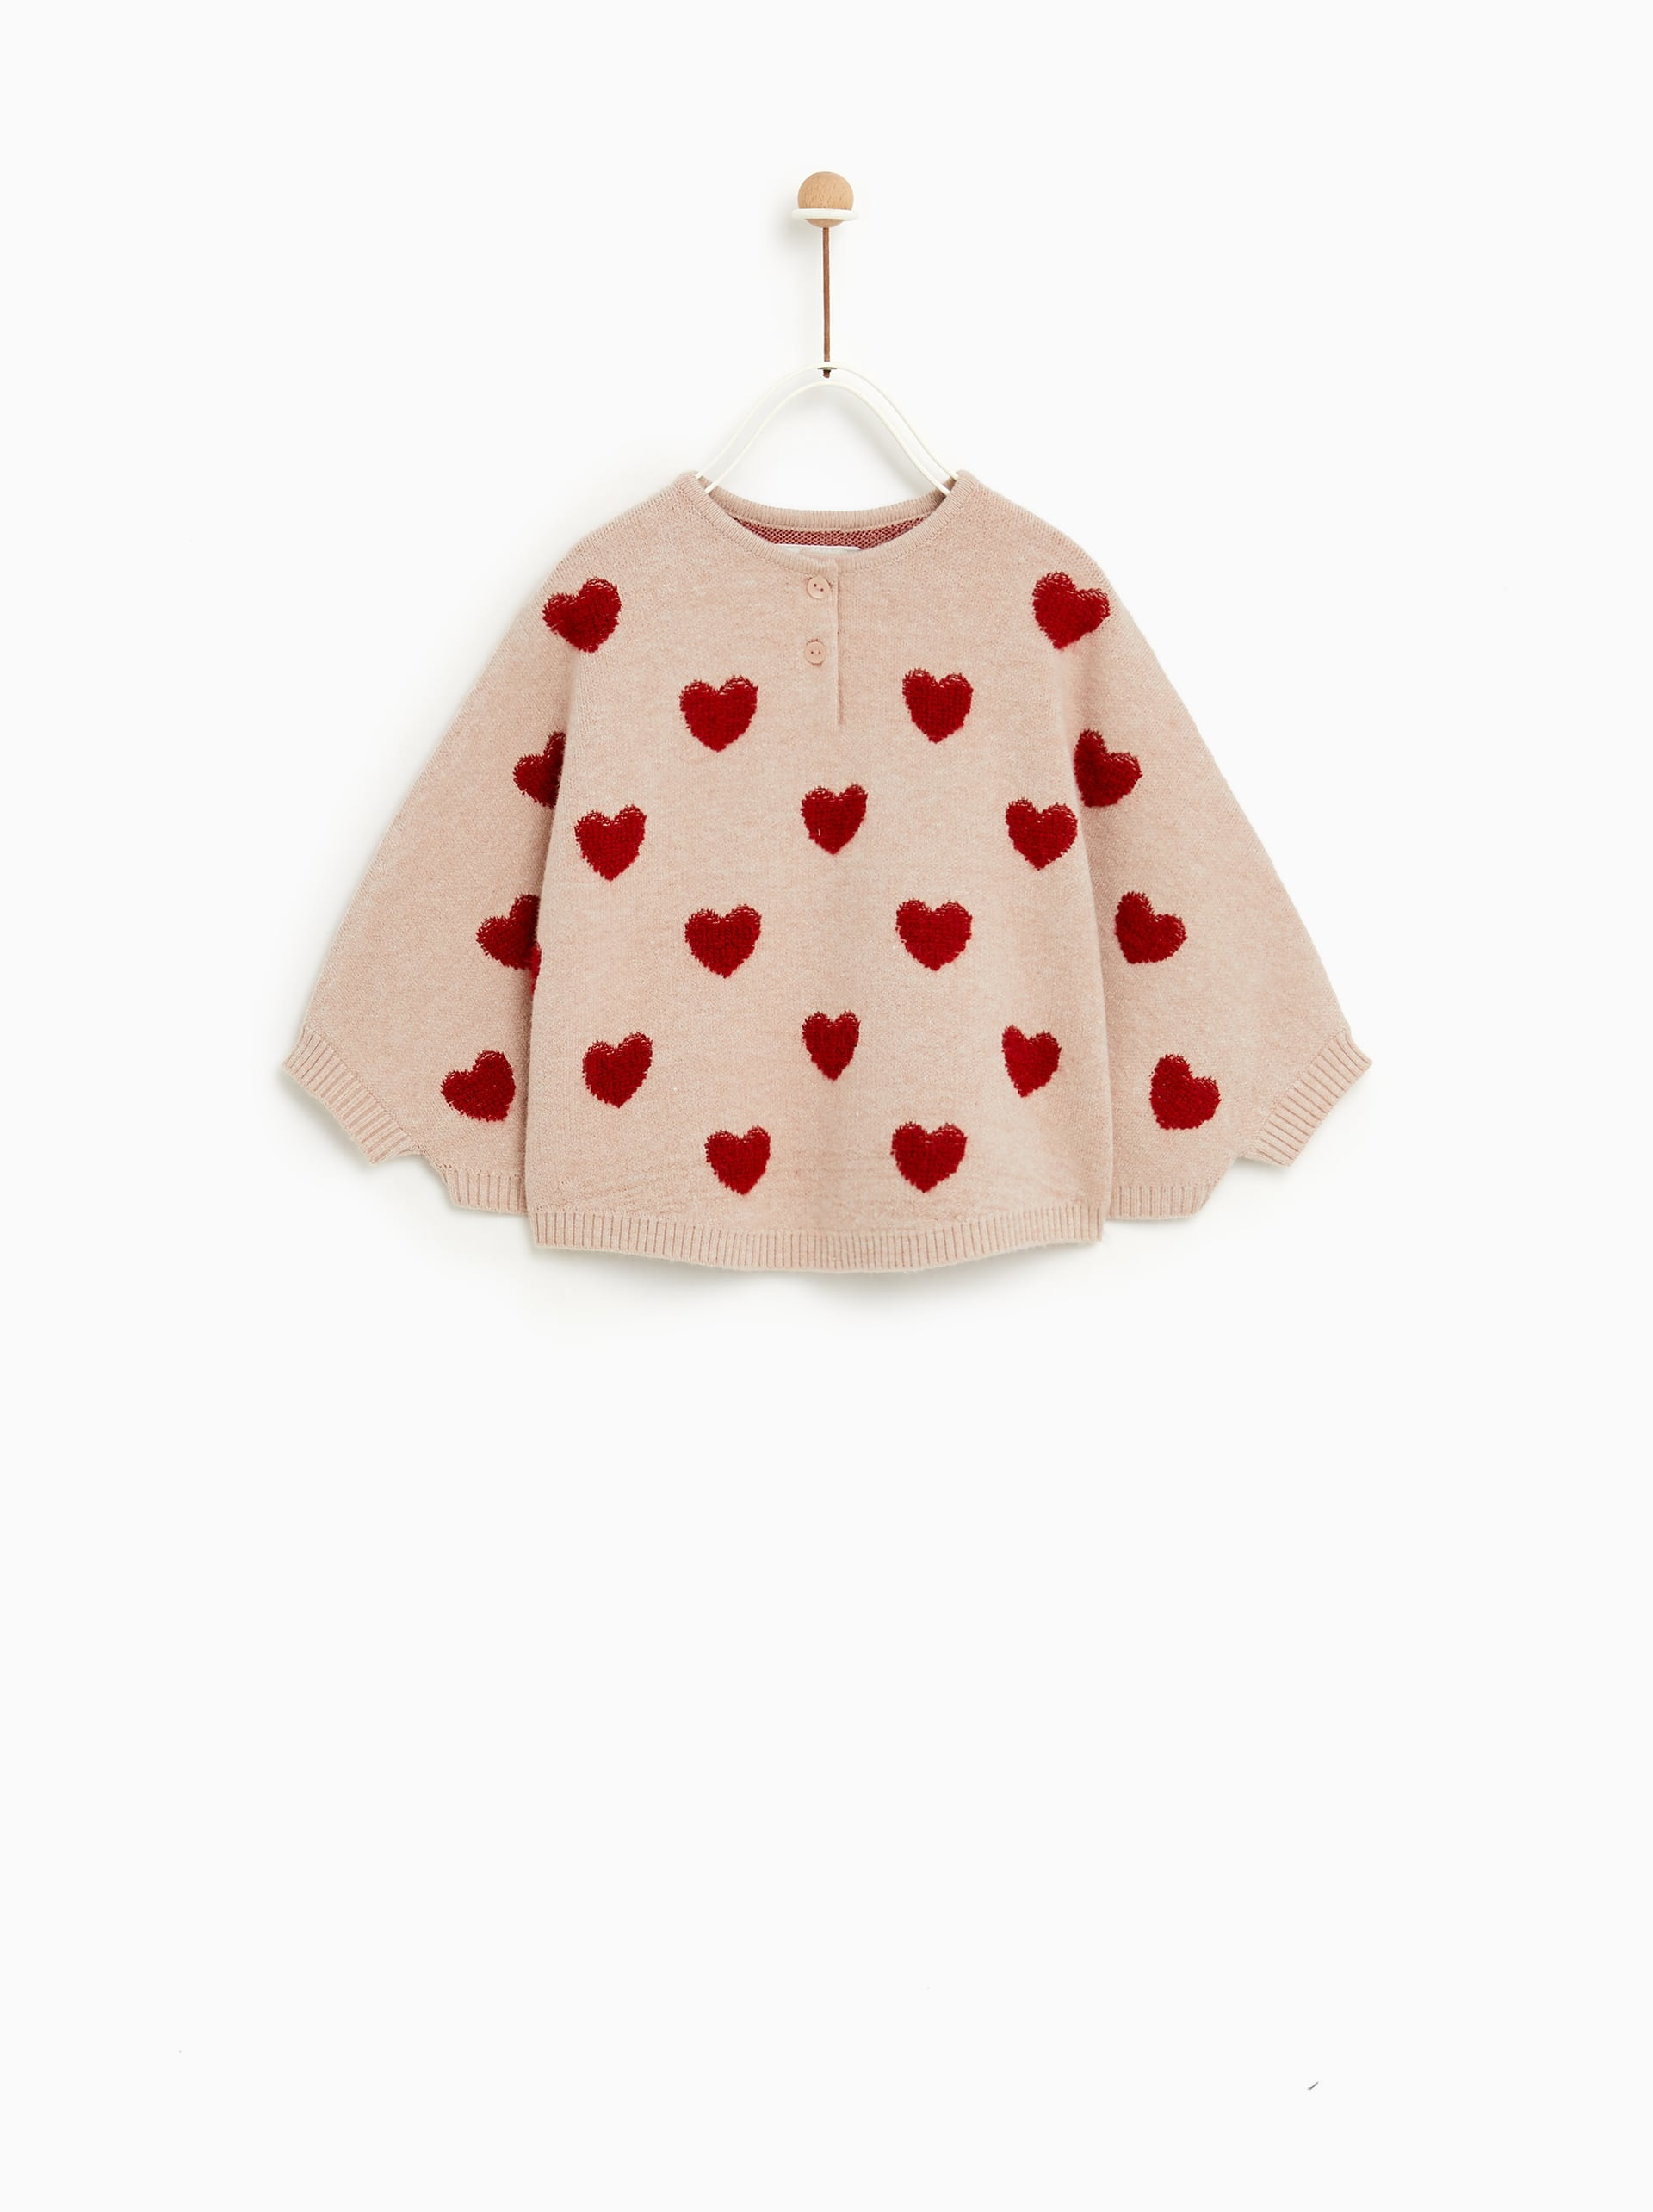 f59c99c4405 14 kids items we want to buy from Zara right now 🛍 - Motherly